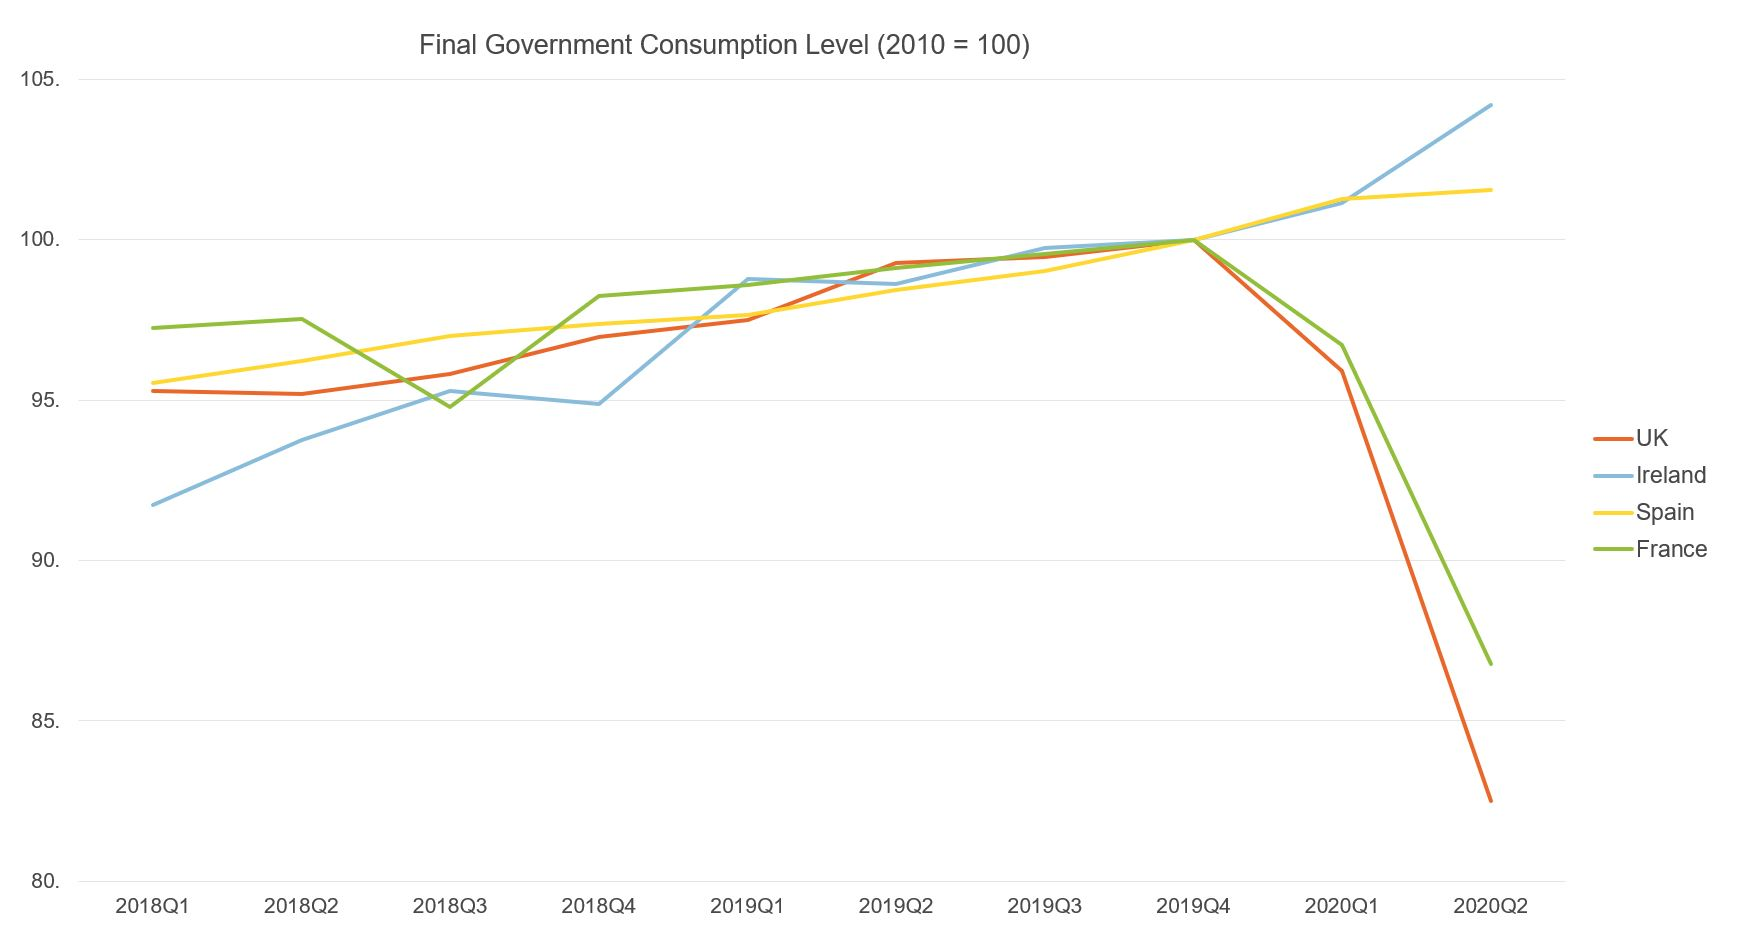 Figure showing government consumption